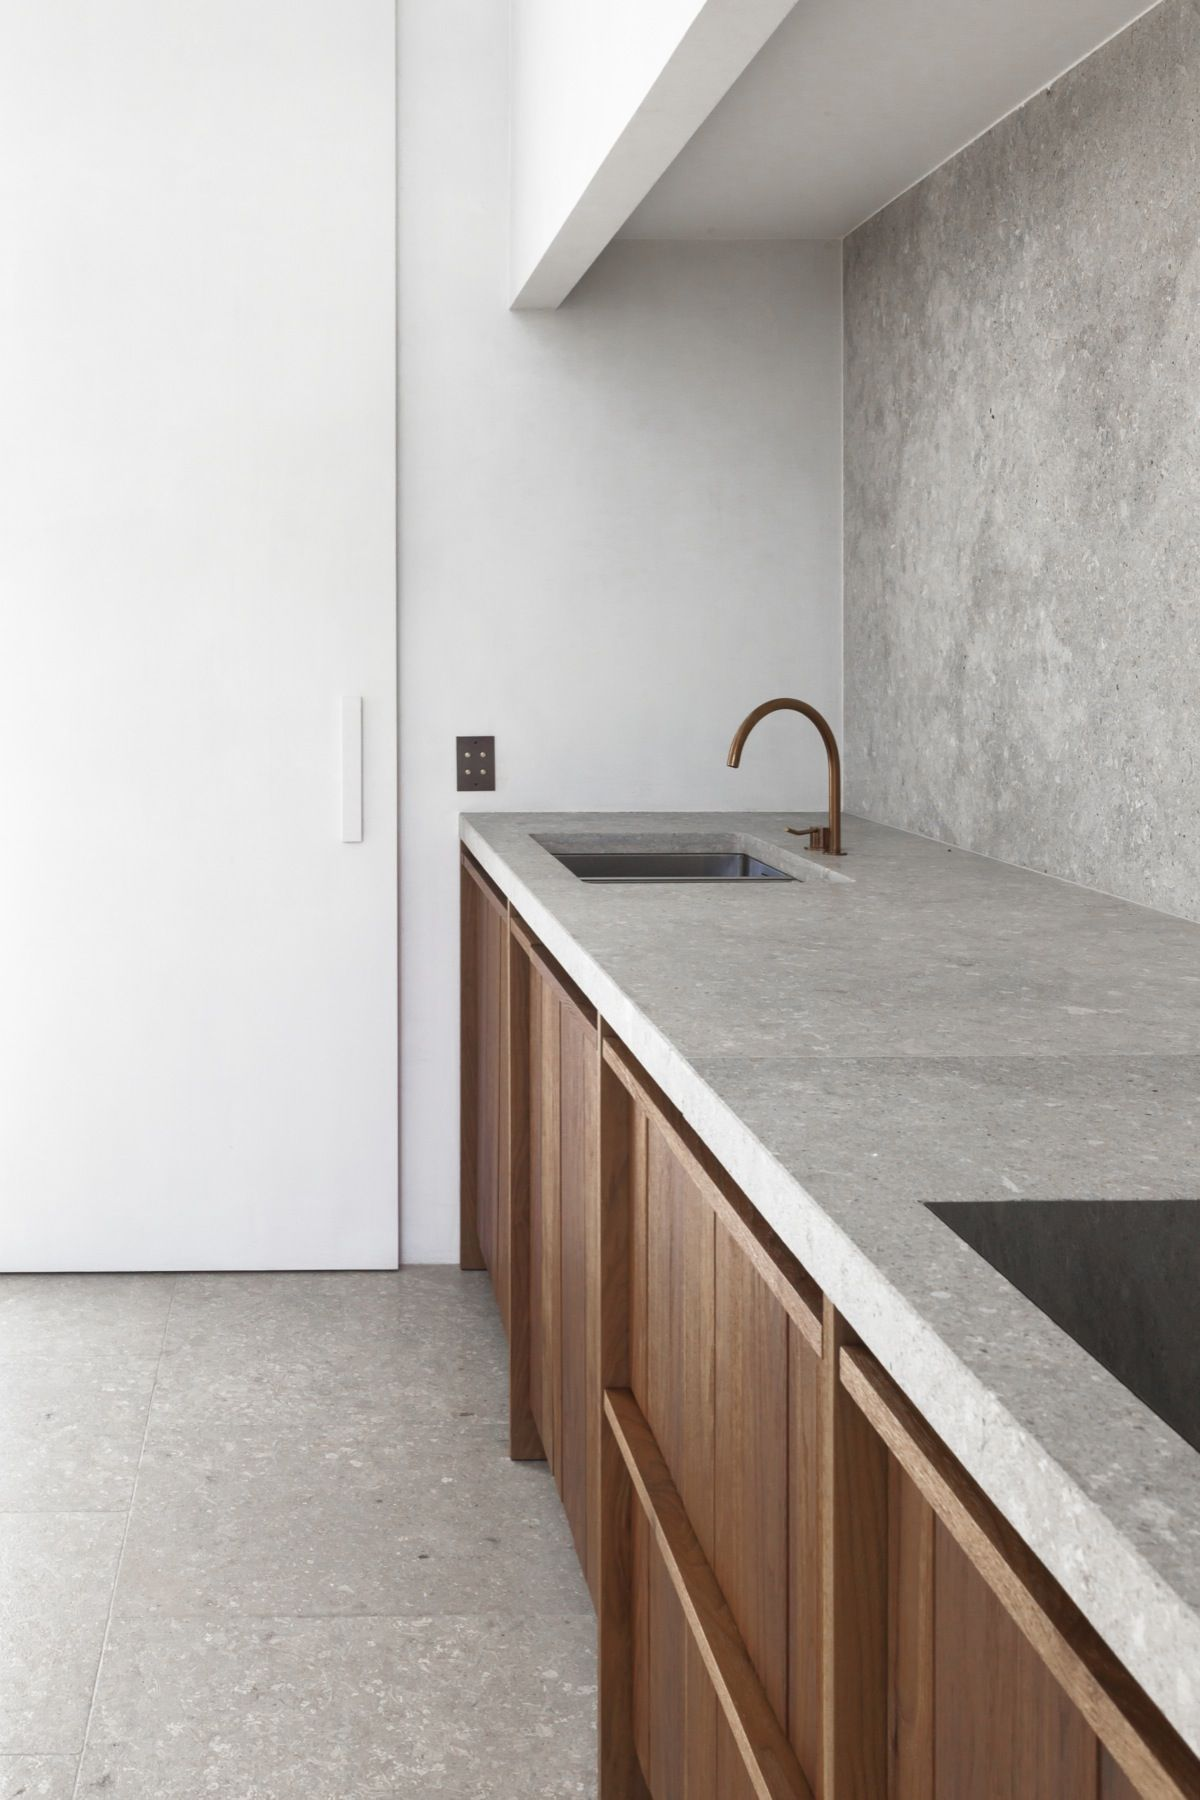 Concrete countertops i absolutely love concrete such a versatile composite if you can imagine it you can build it